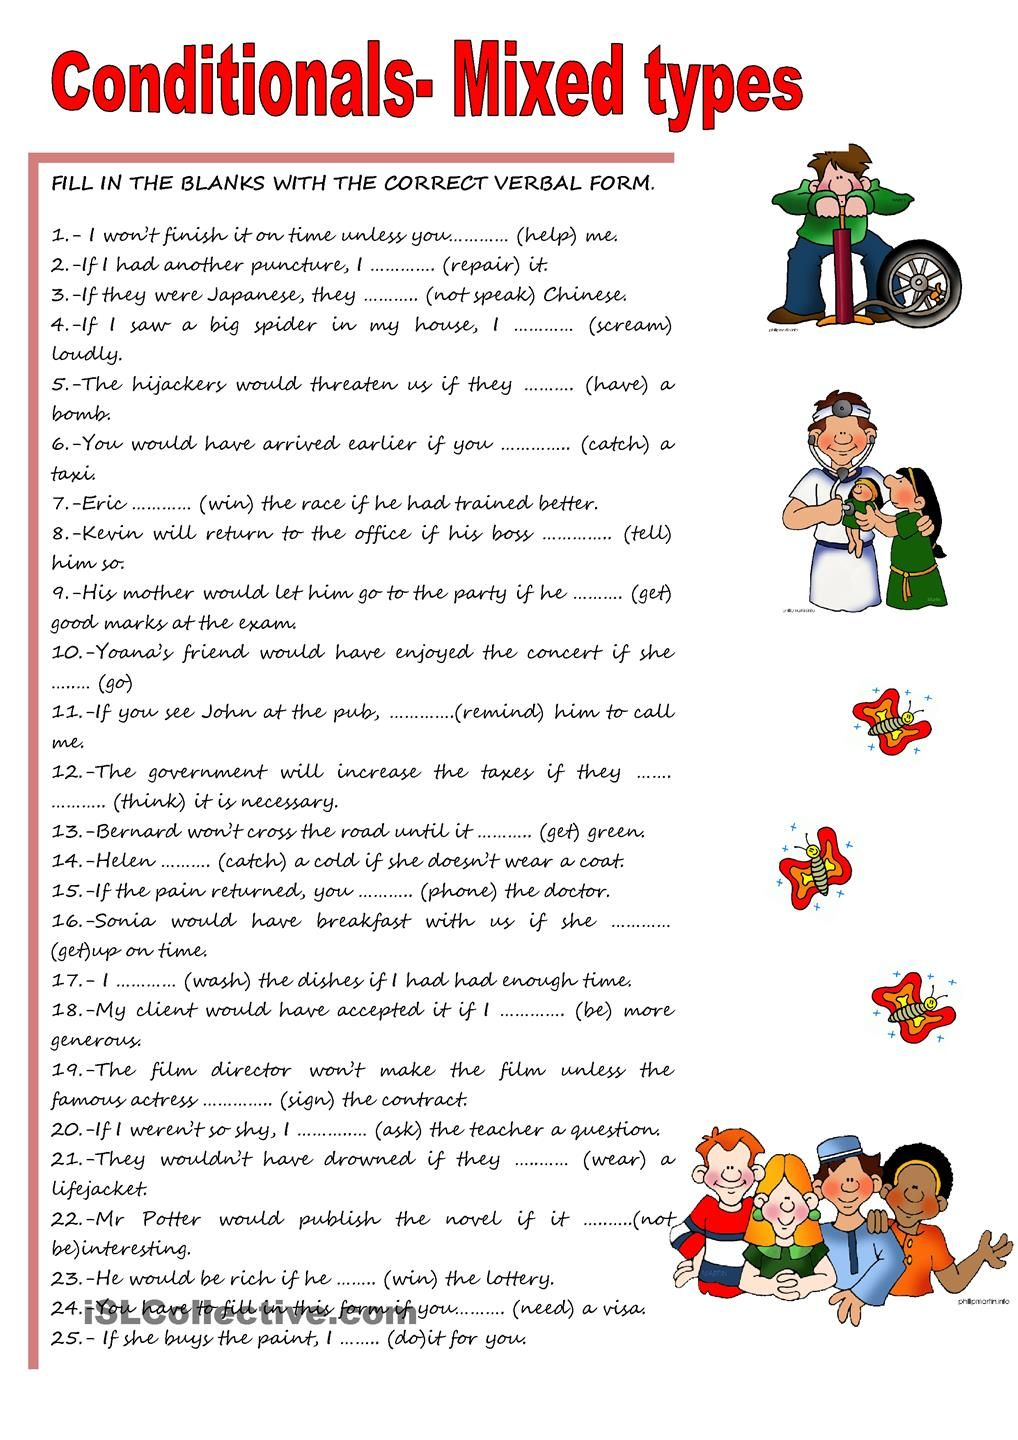 Conditionals Mixed Types English Grammar Worksheets English Language Learning English Lessons [ 1440 x 1018 Pixel ]